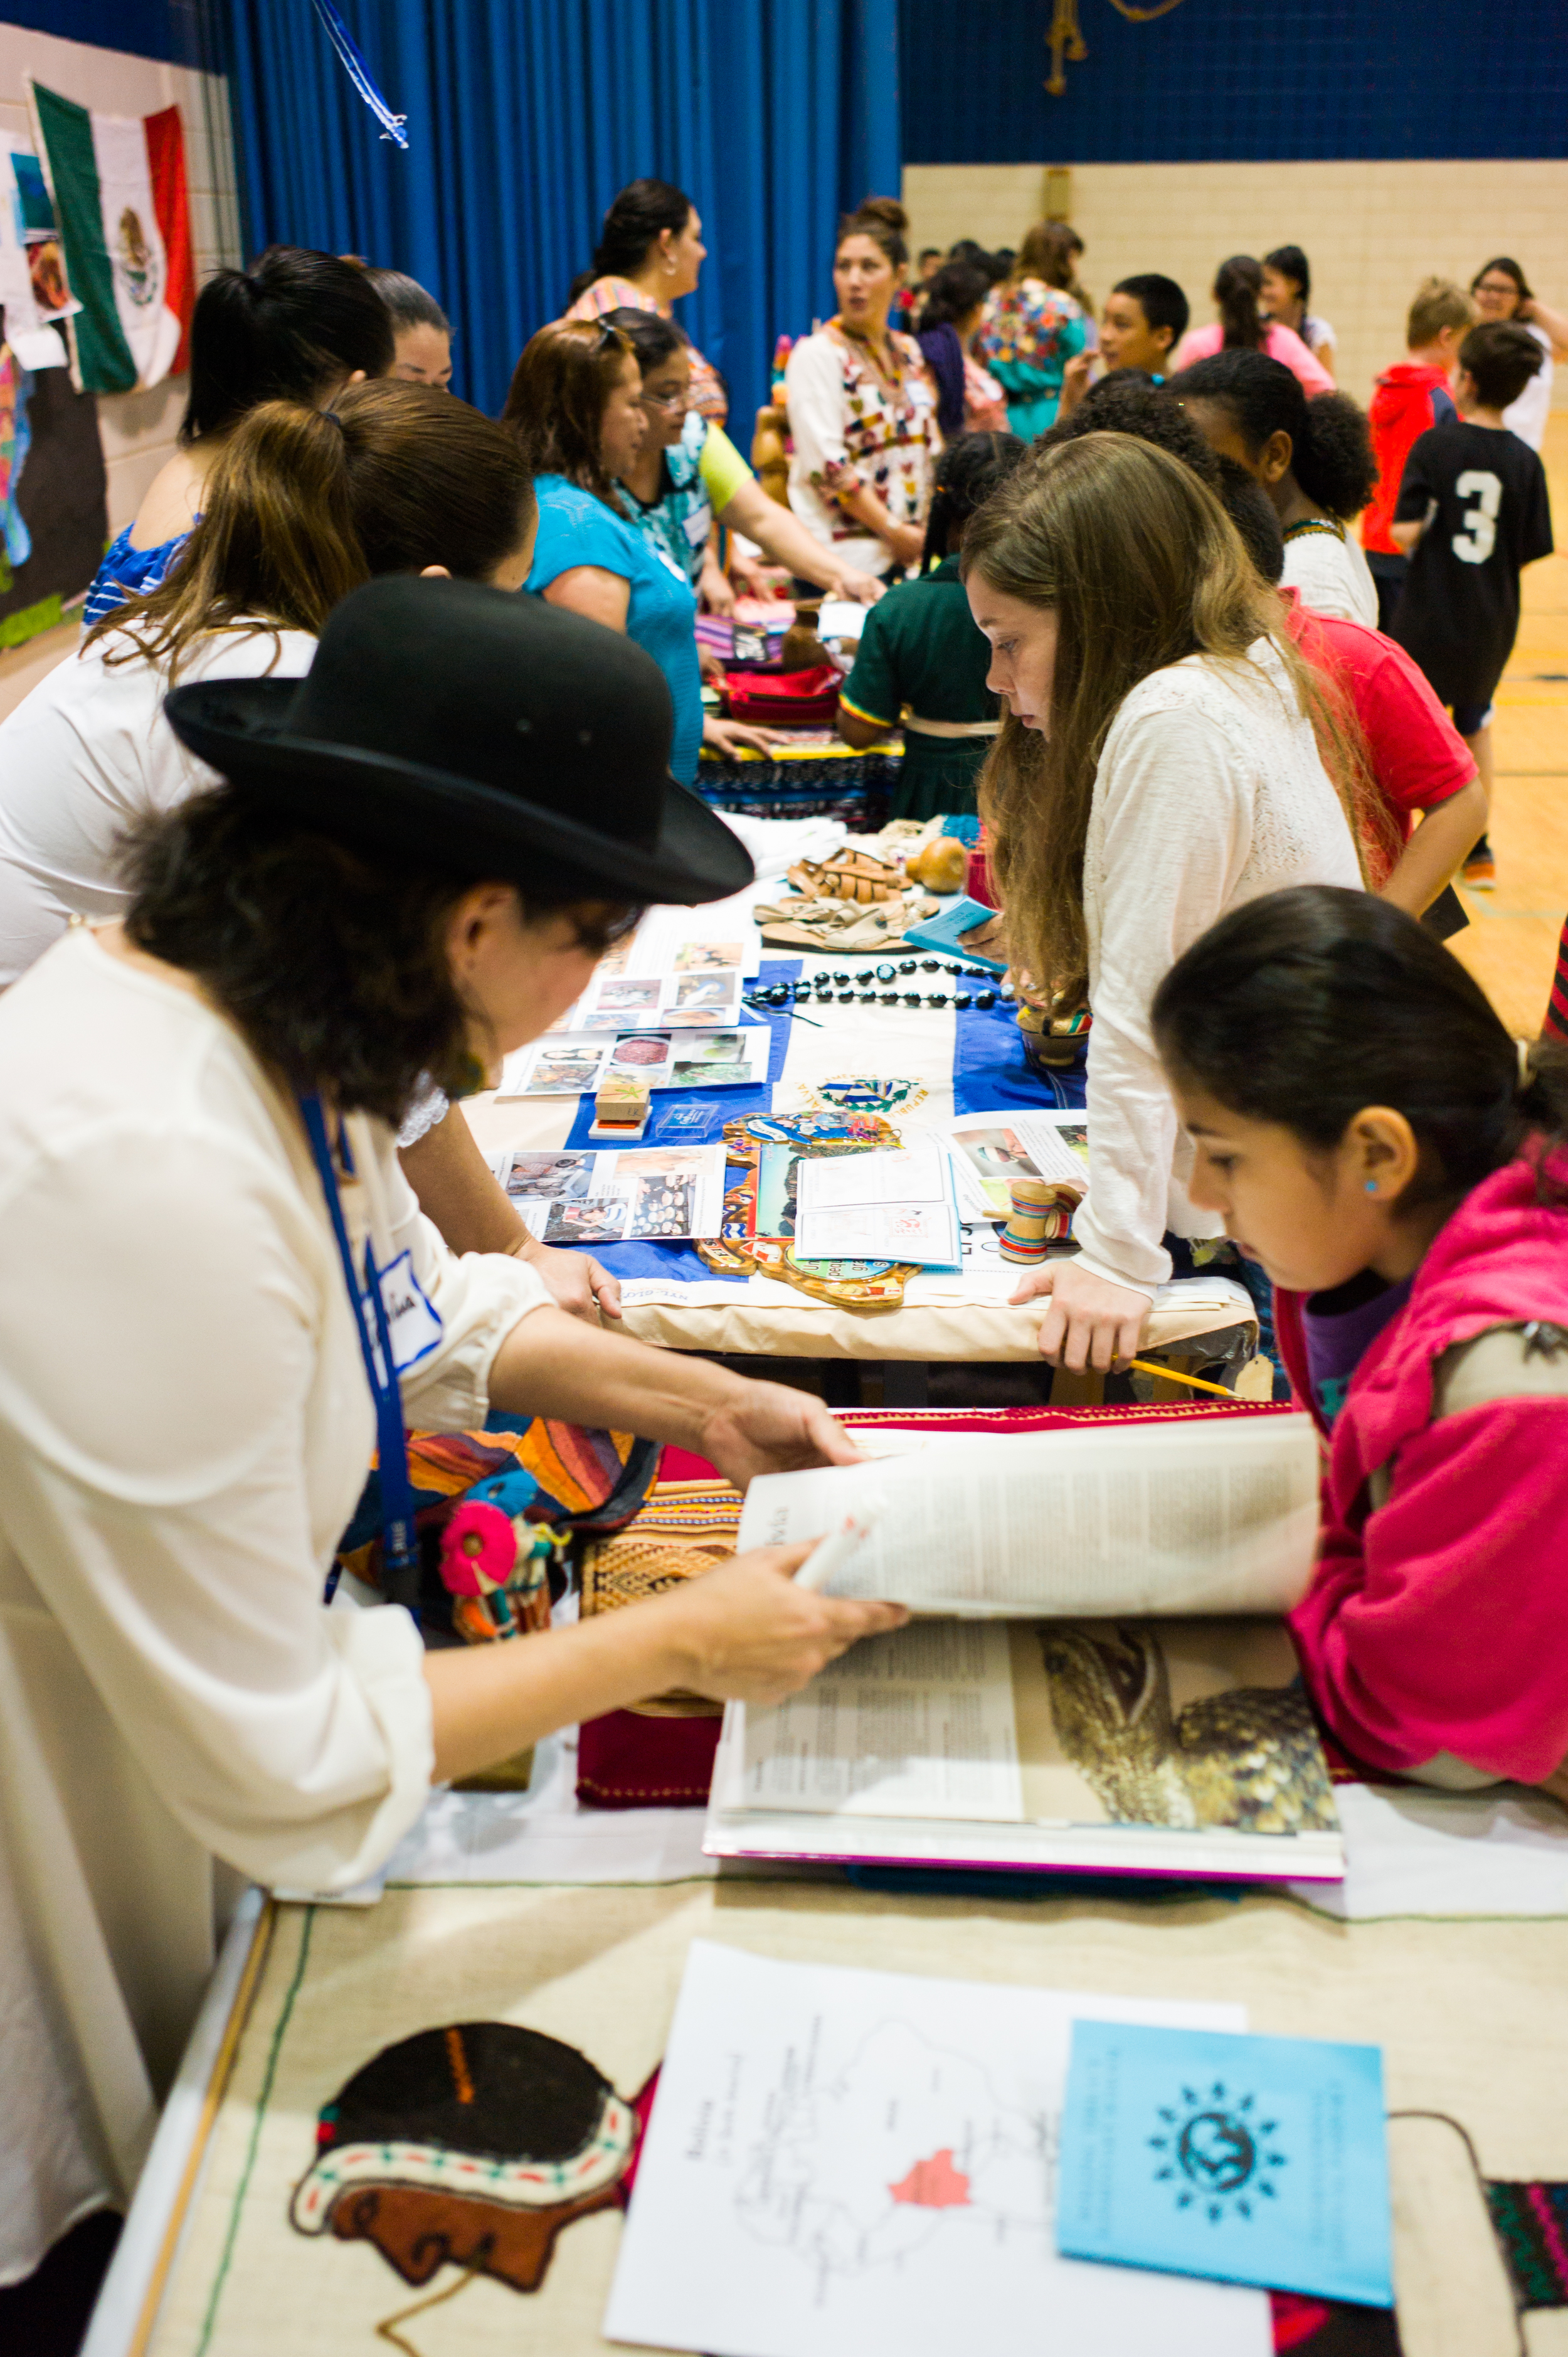 The gym was filled with tables from countries all over the world. Students could hold objects from different countries (artwork, ceramics, skis, dolls, etc.), try out games (like using the capirucho from El Salvador), play musical instruments (like the pellet drum from China or a Ngoma drum from Namibia), look at clothing, make a beaded bracelet (from Kenya), try out using chopsticks and much, much more.